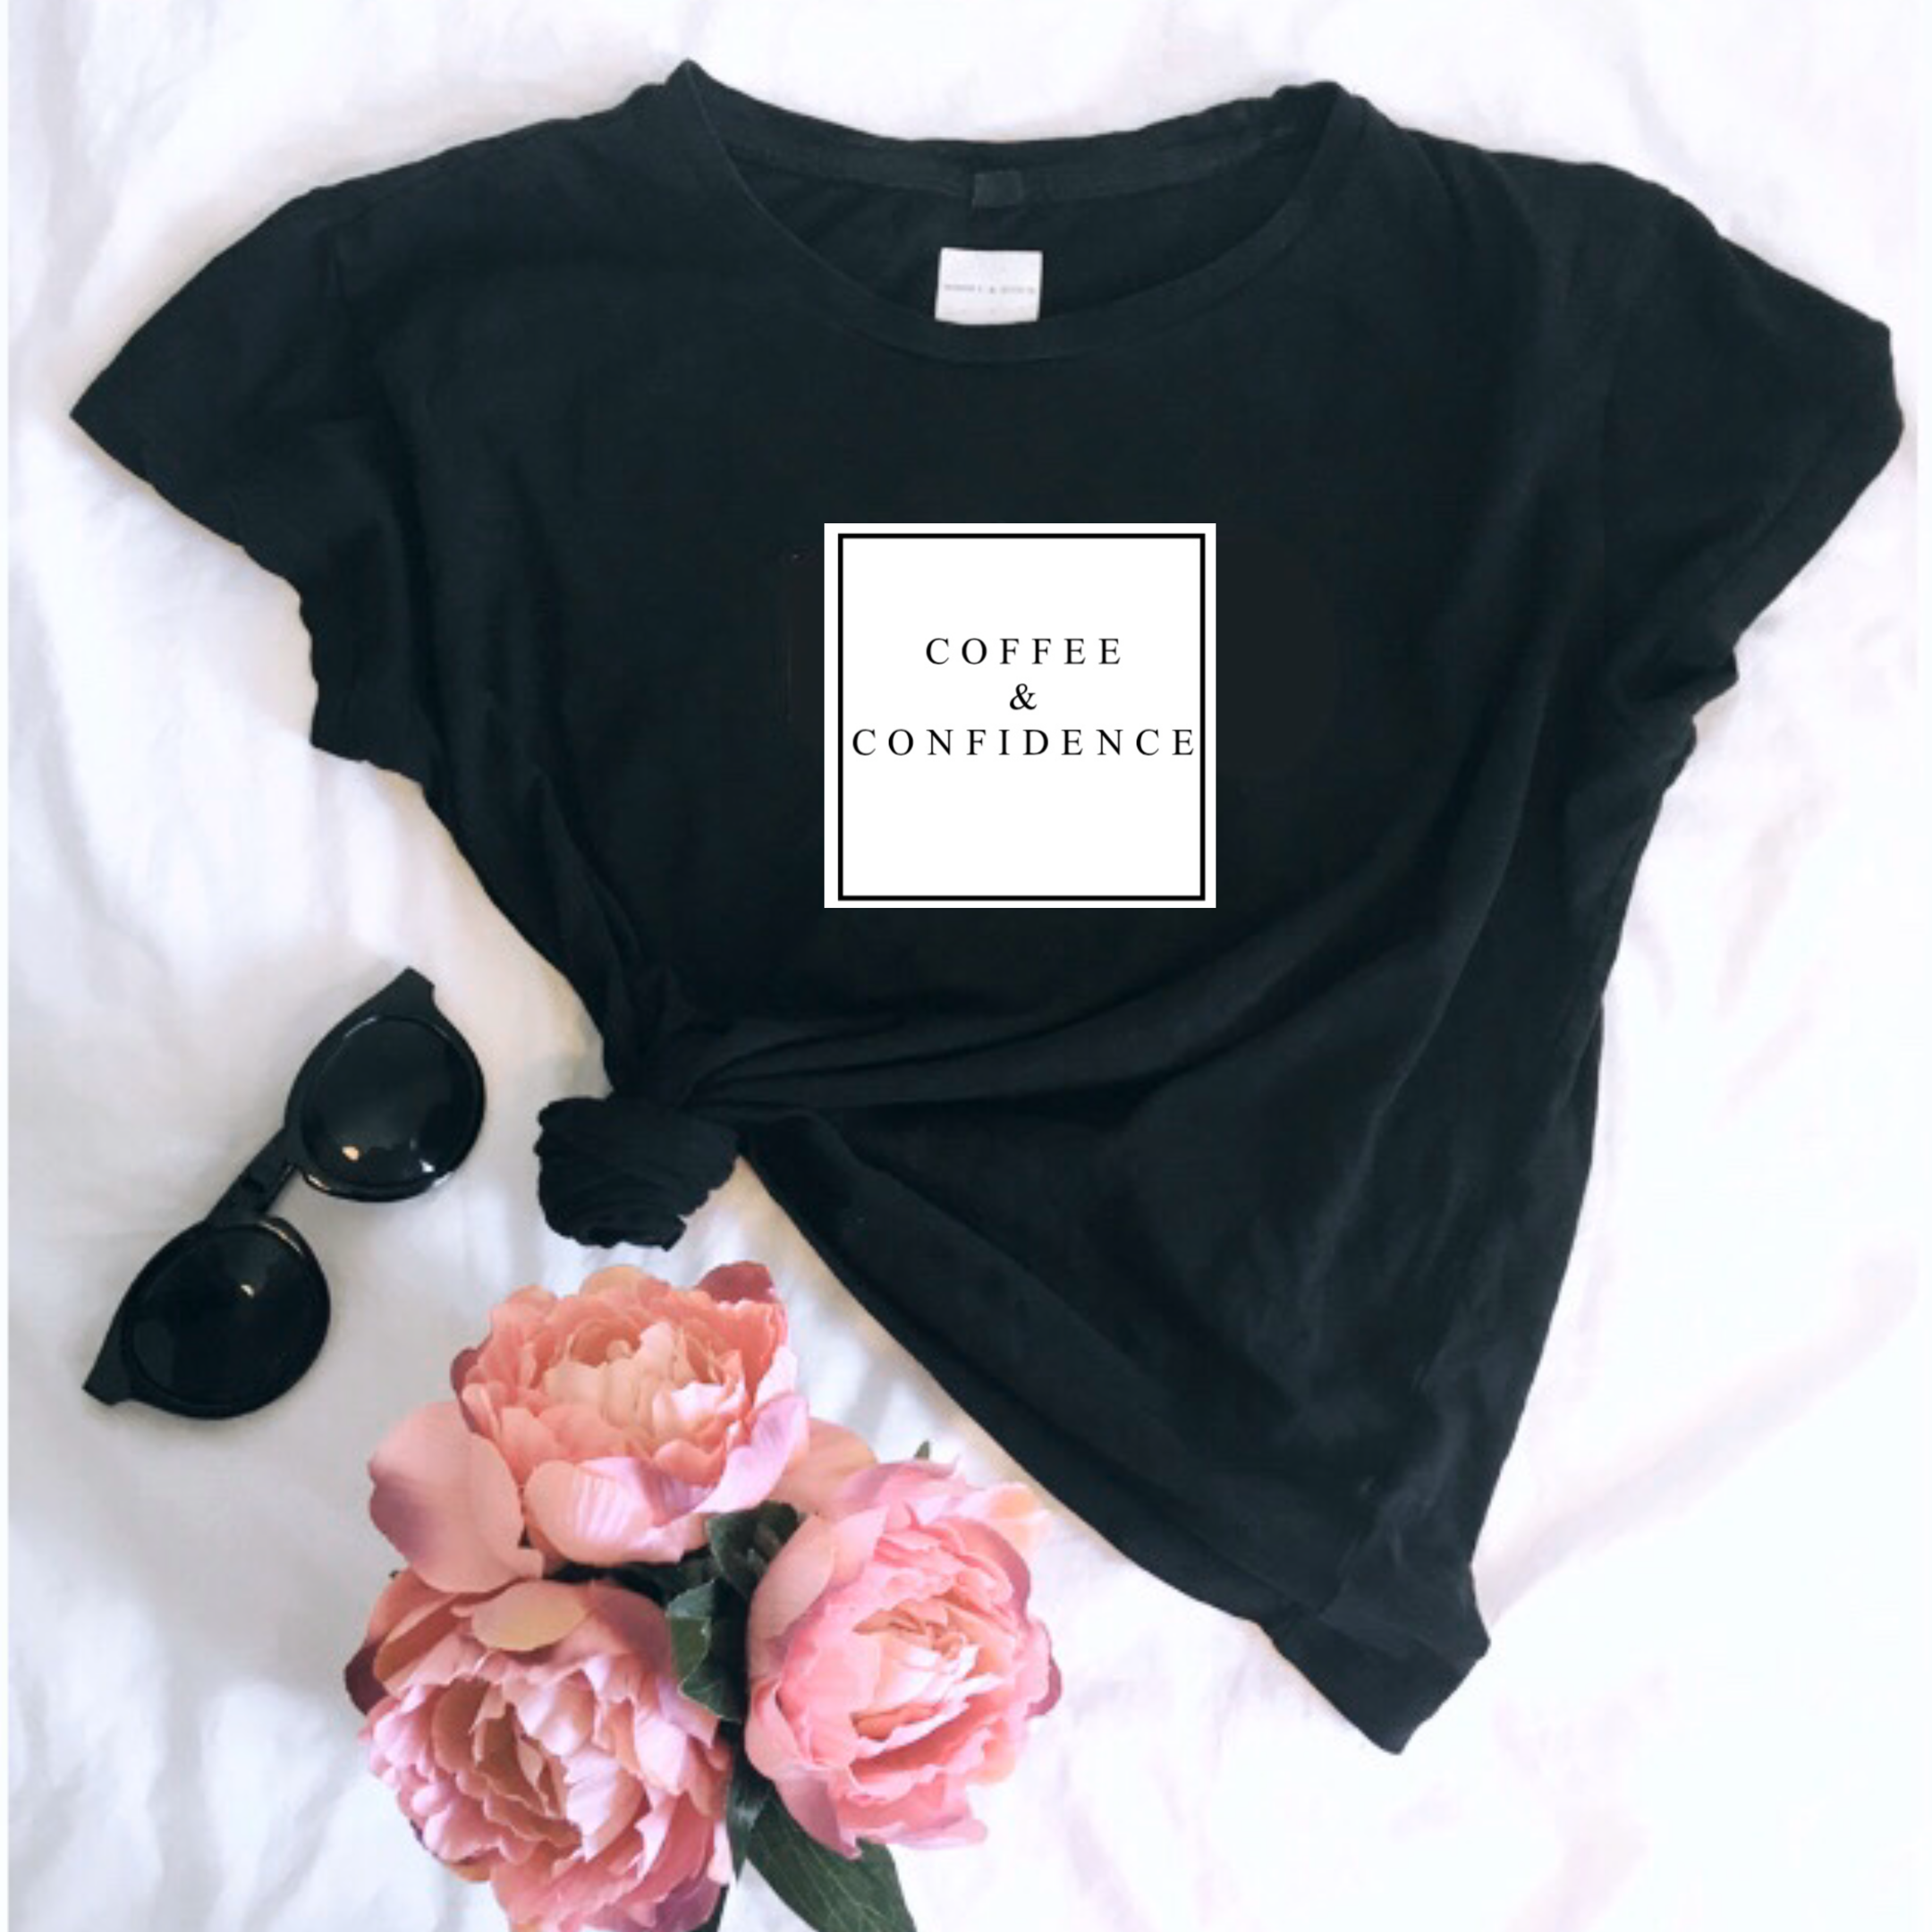 'COFFEE & CONFIDENCE' Ladies Organic Slogan Tee